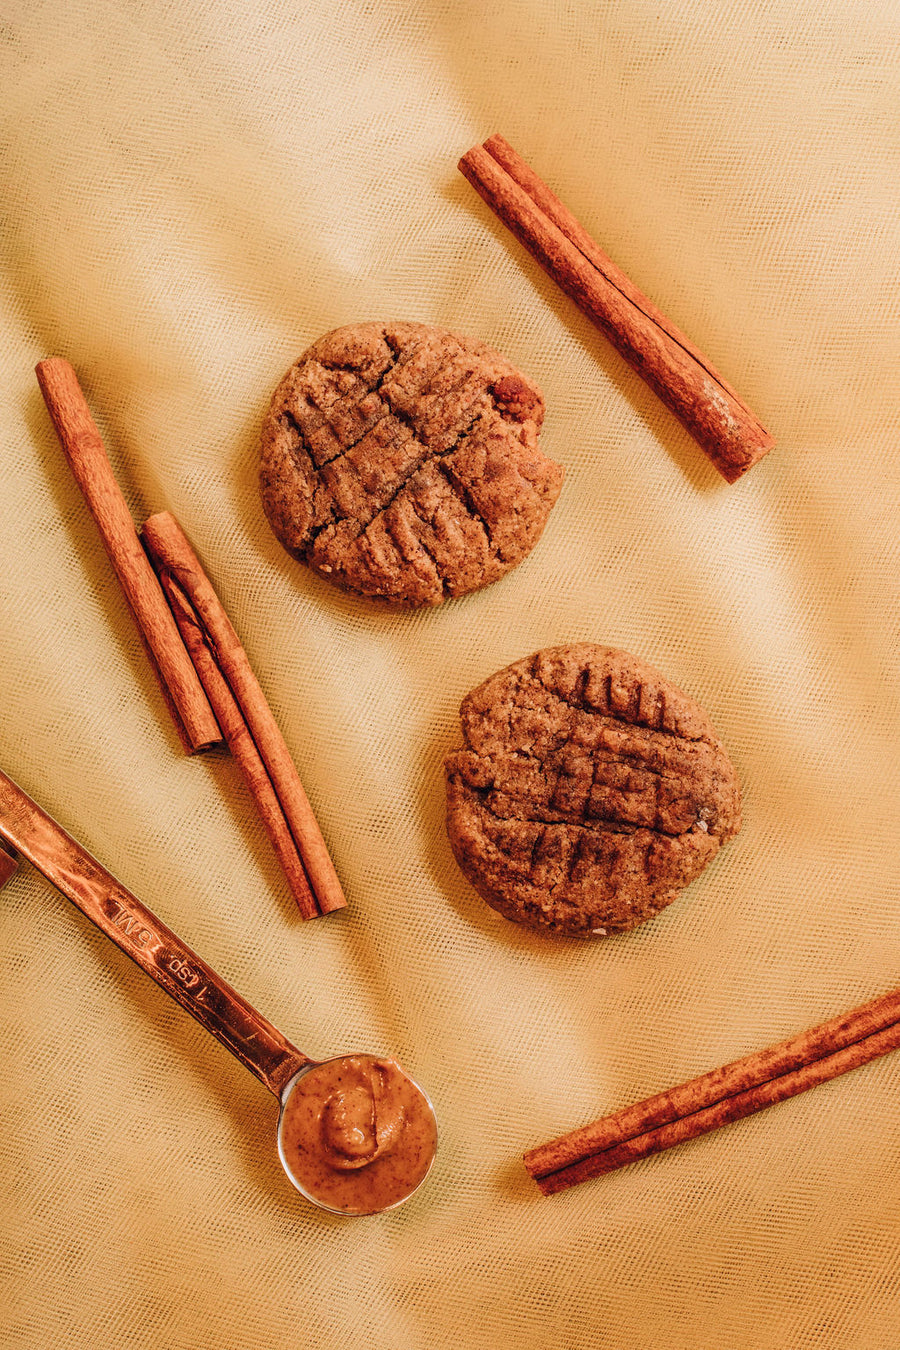 CINNAMON ALMOND BUTTER OATMEAL COOKIE